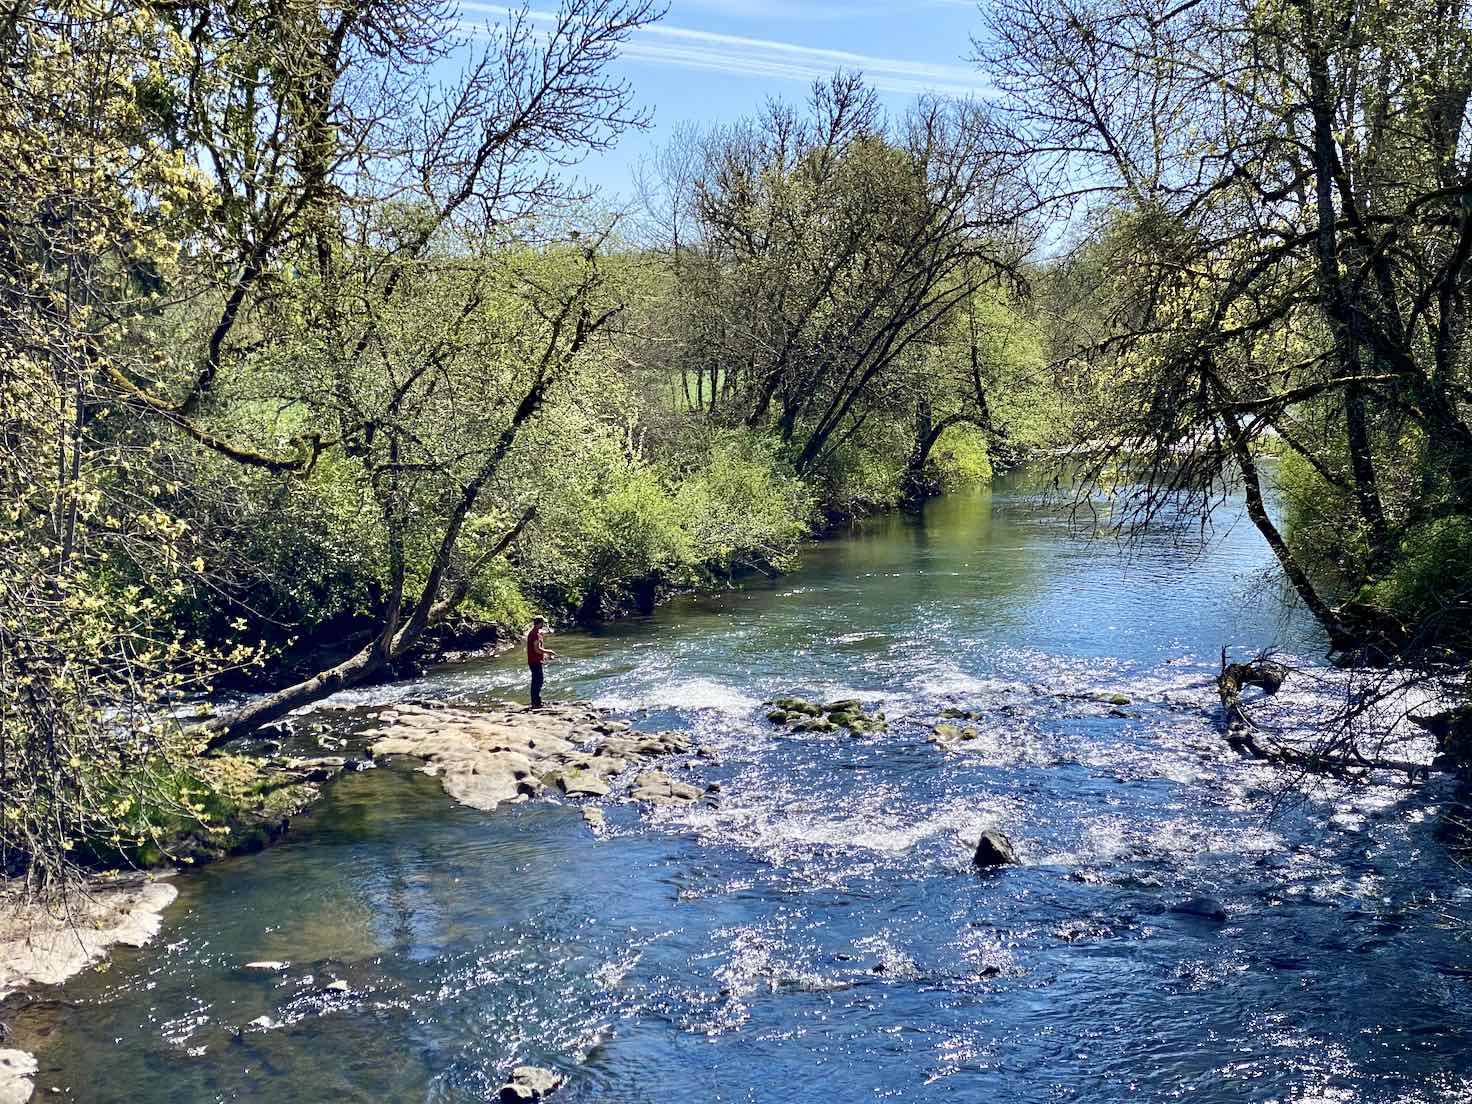 A fisherman working the Yamhill River.